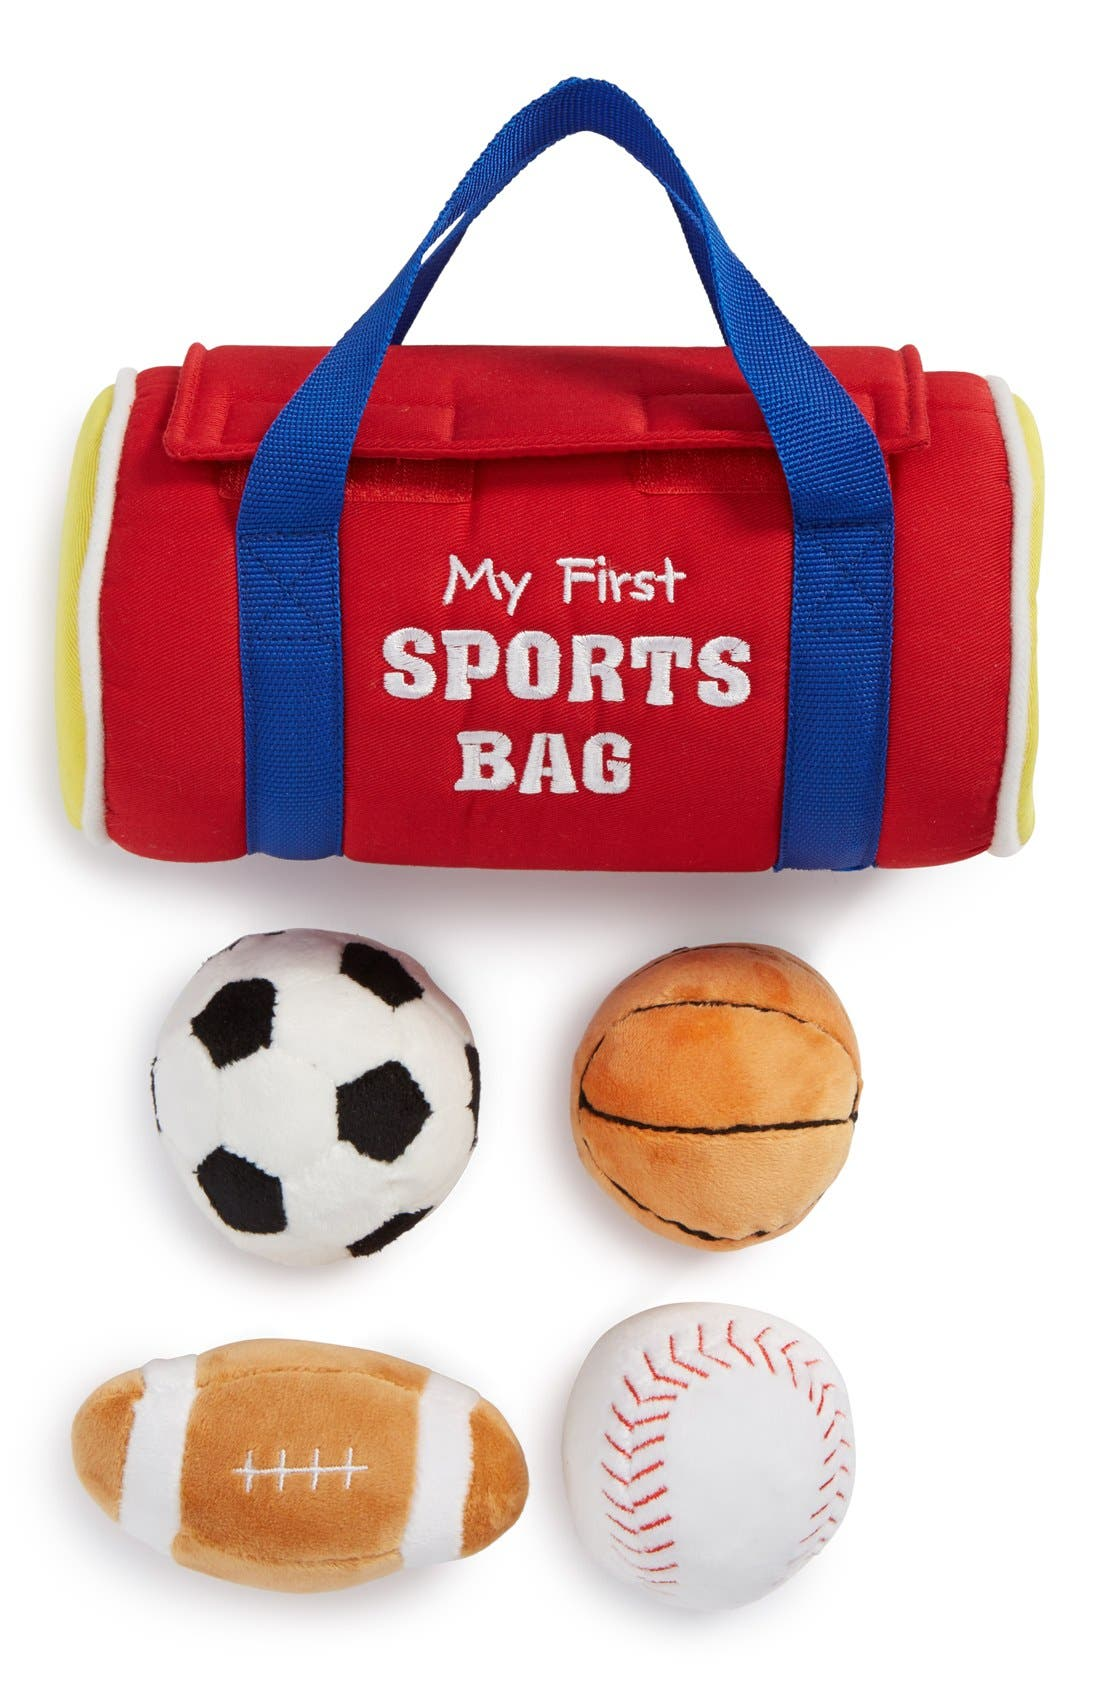 Baby Gund 'My First Sports Bag' Play Set